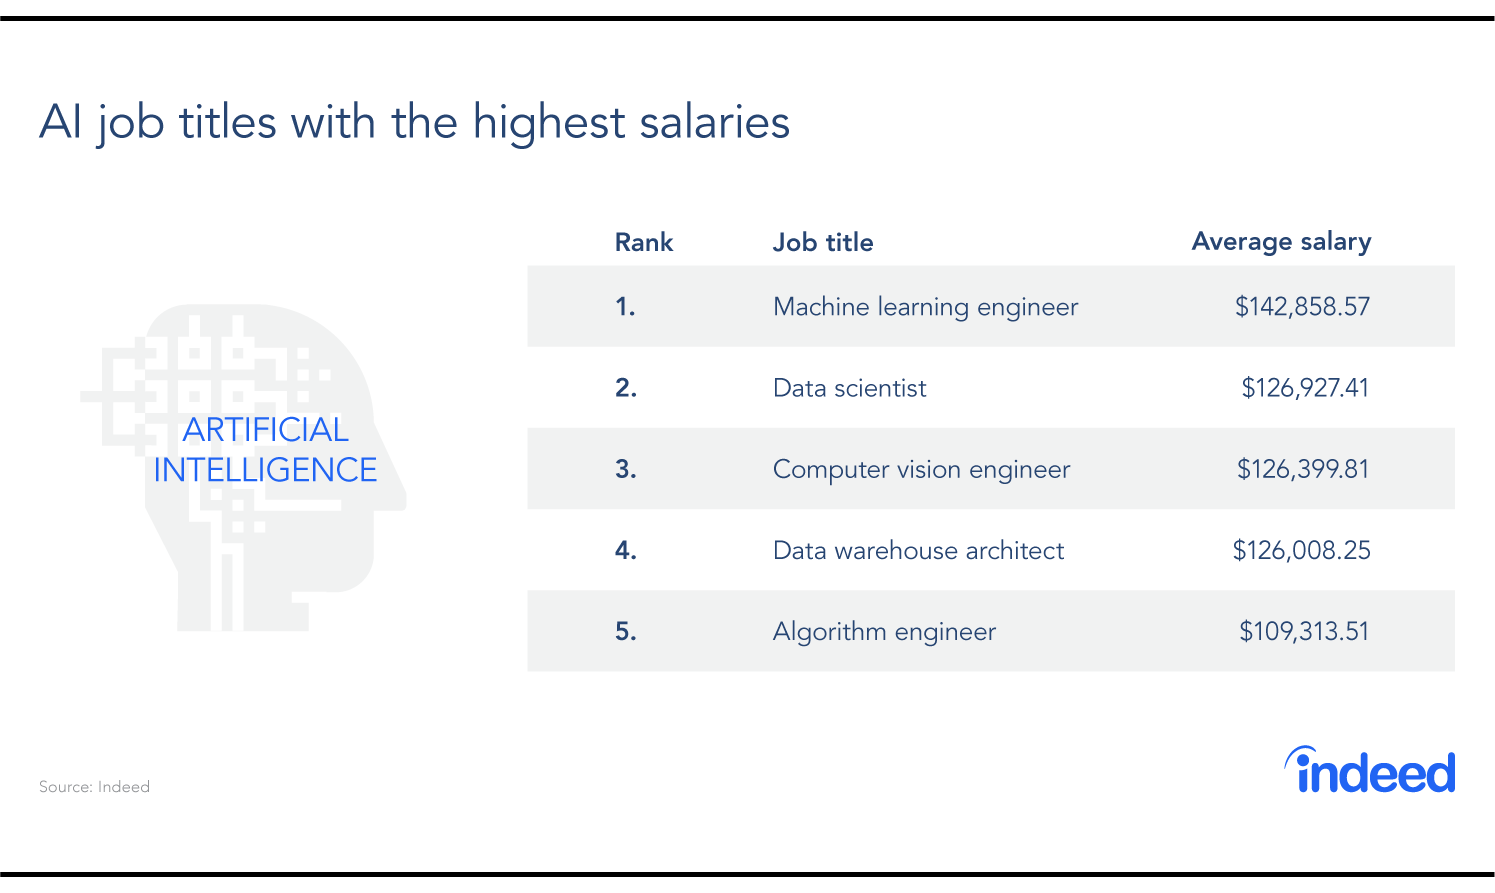 The top AI jobs by average salary